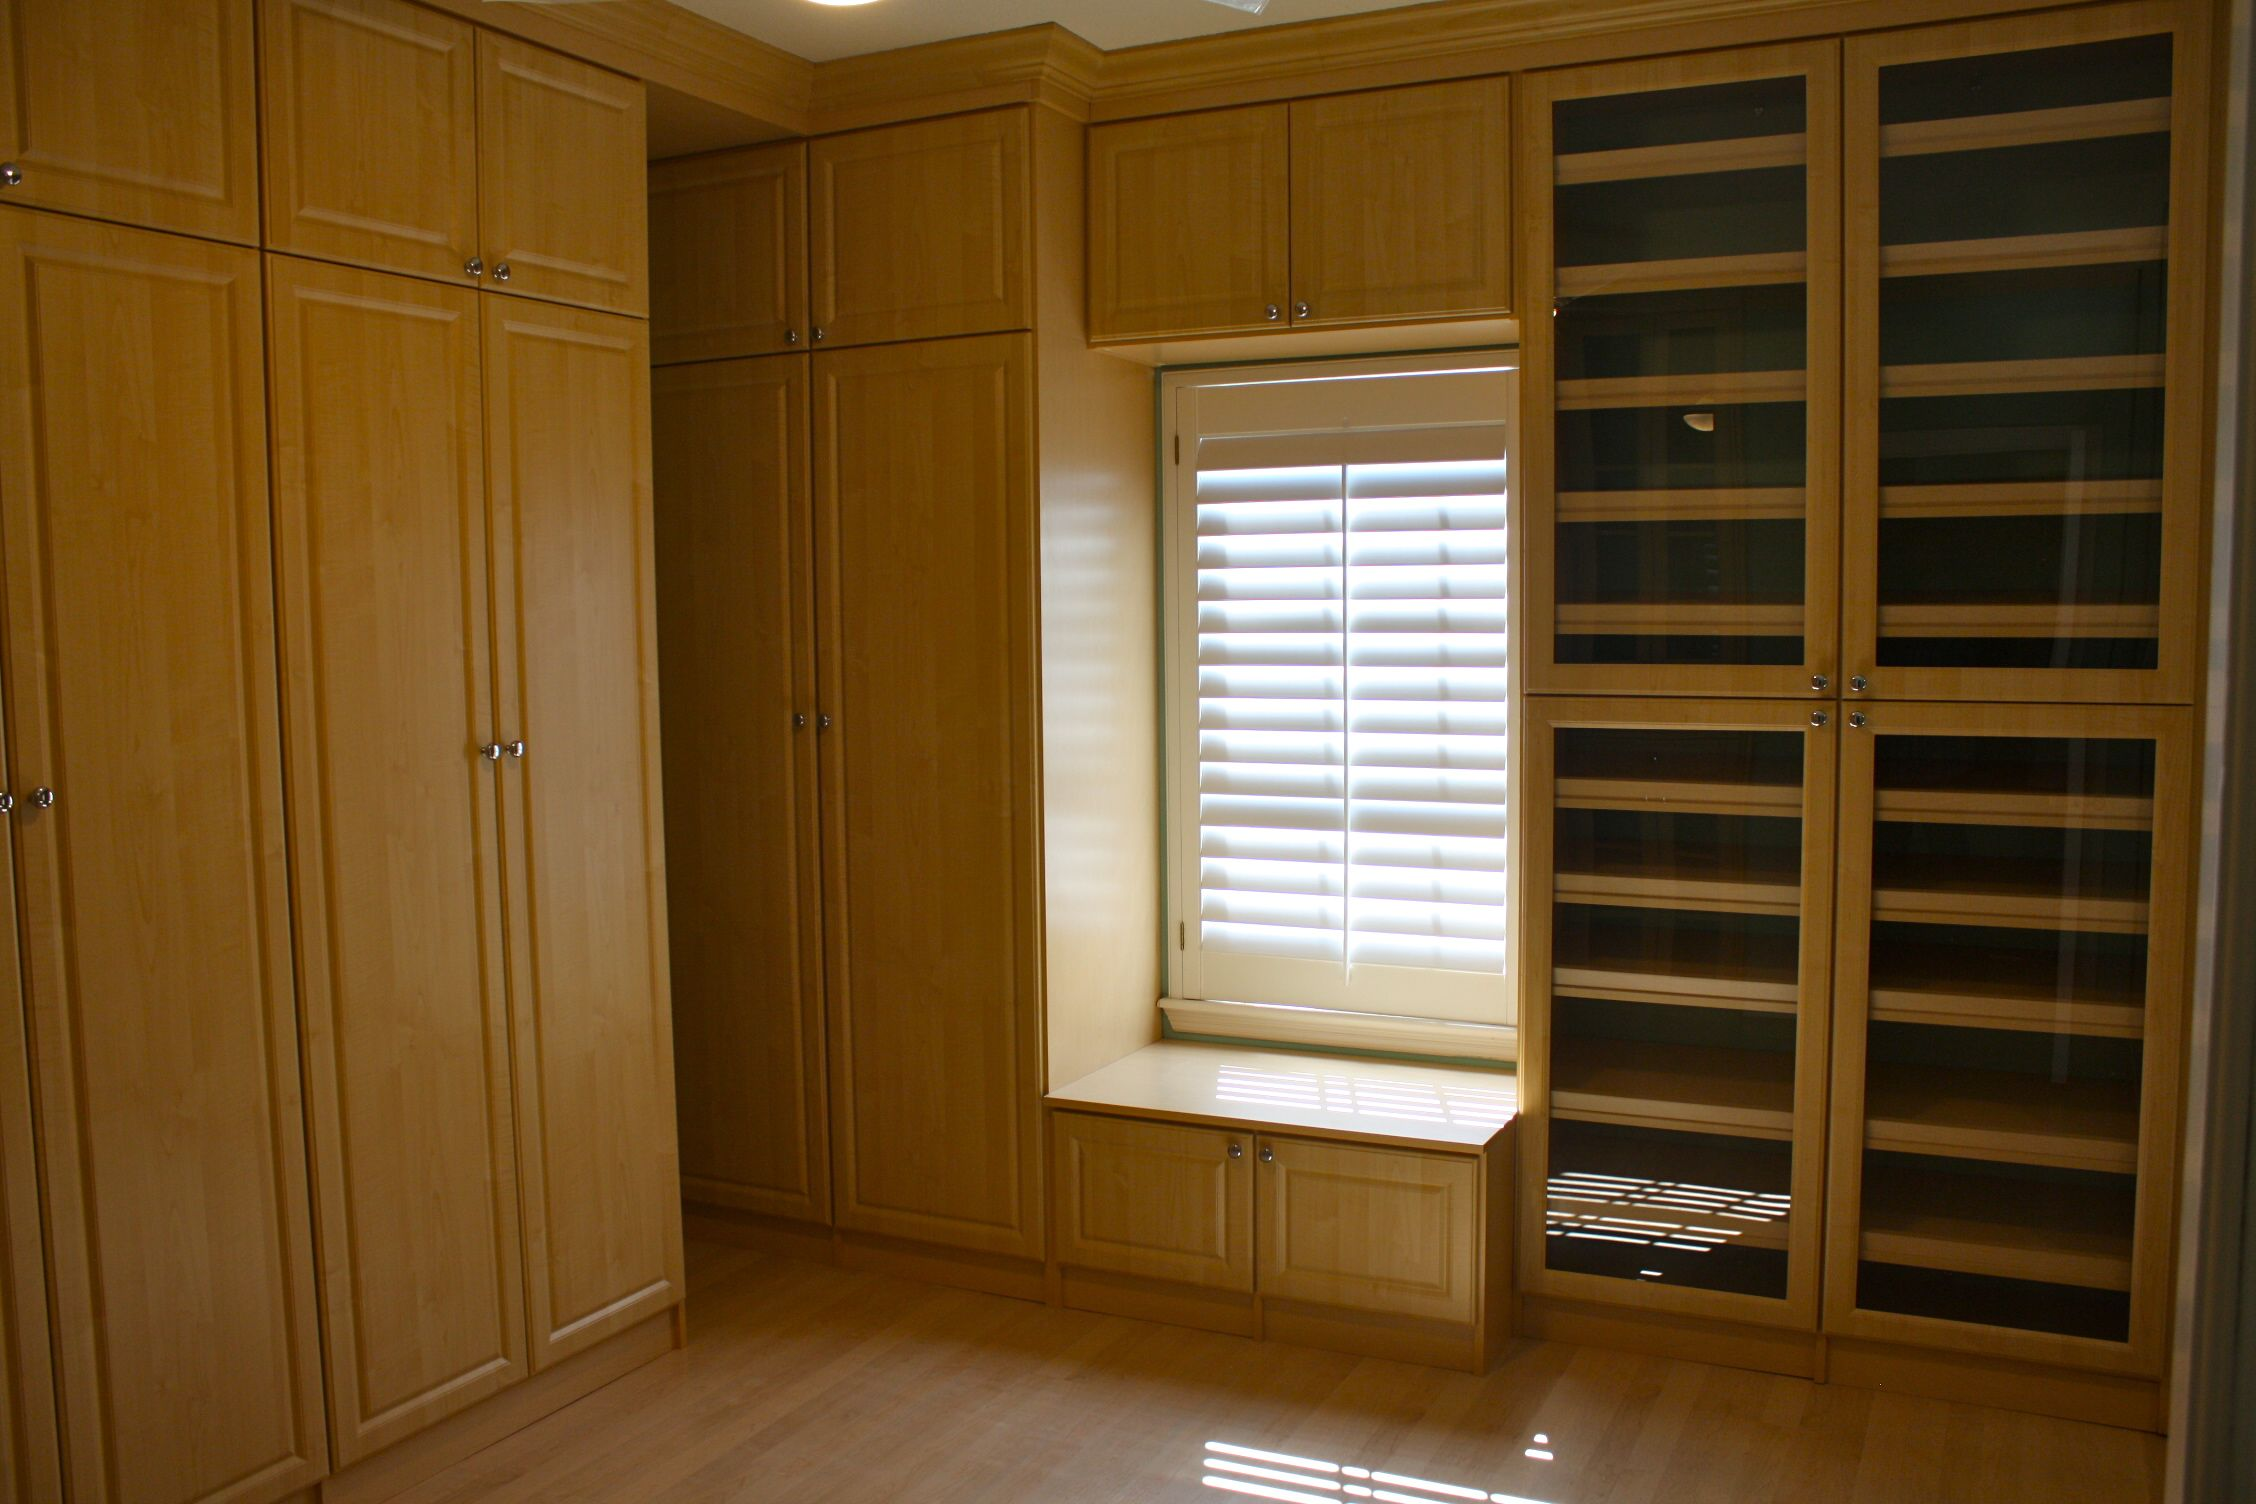 Gallery Cutting Edge Closets. Eman Home Office 25 Photos 21 Reviews  Anization